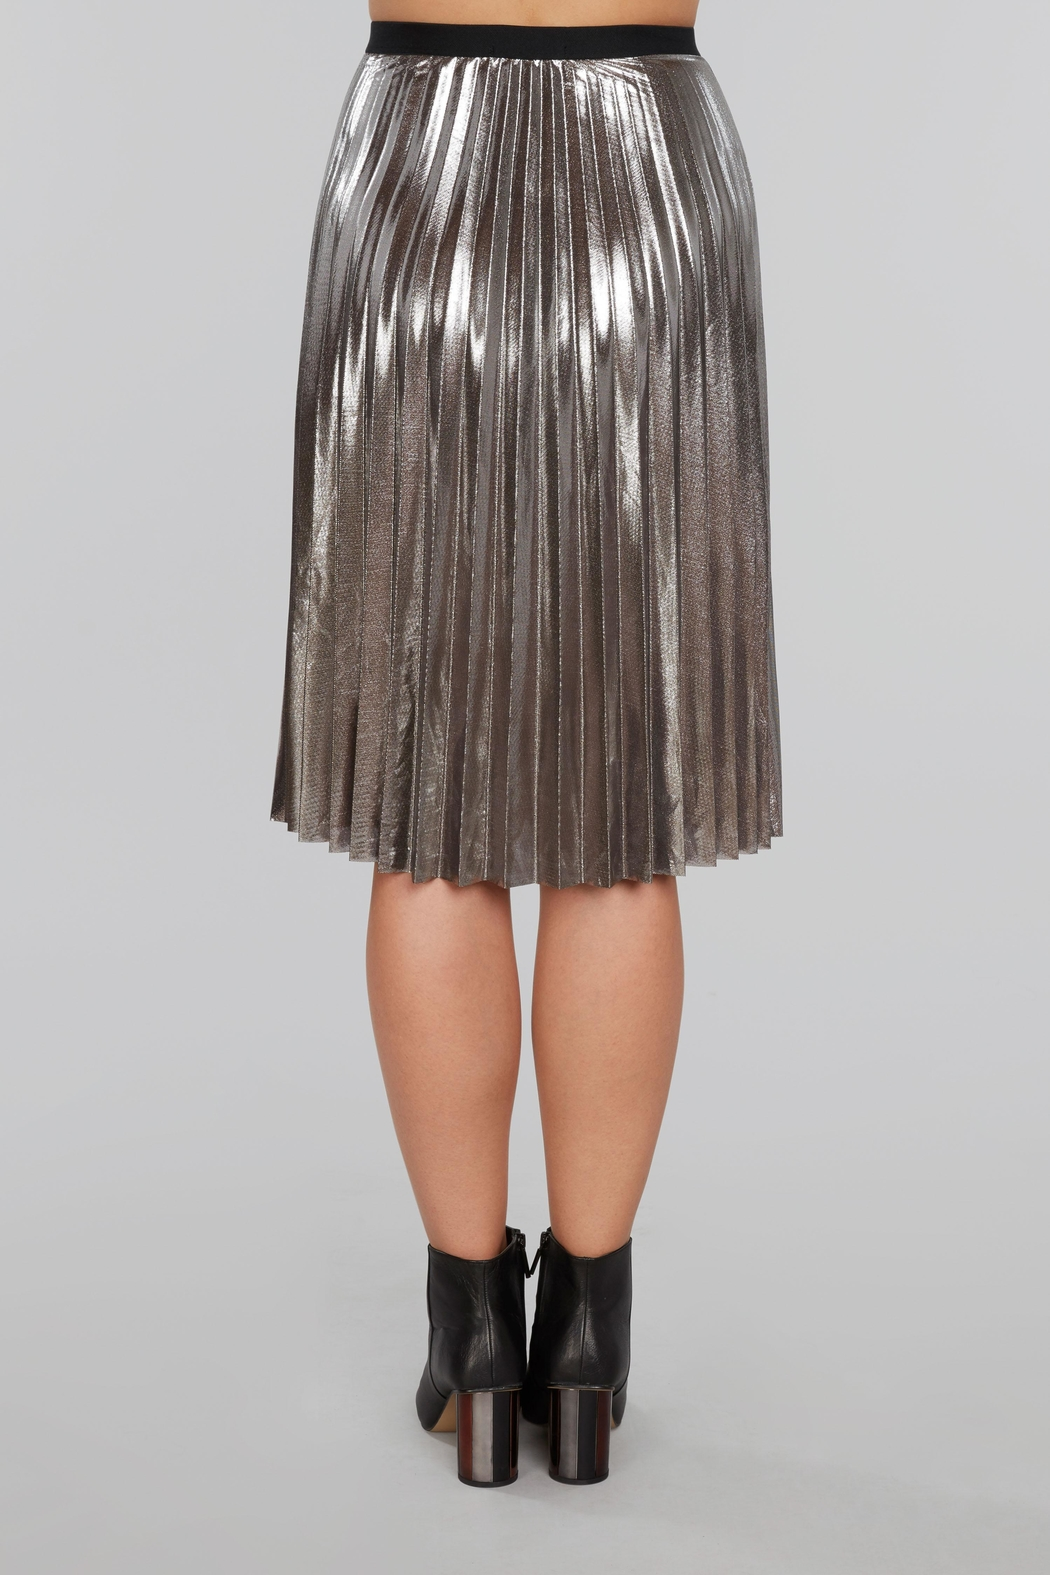 Willow & Clay Pleated Metallic Midi Skirt - Front Full Image